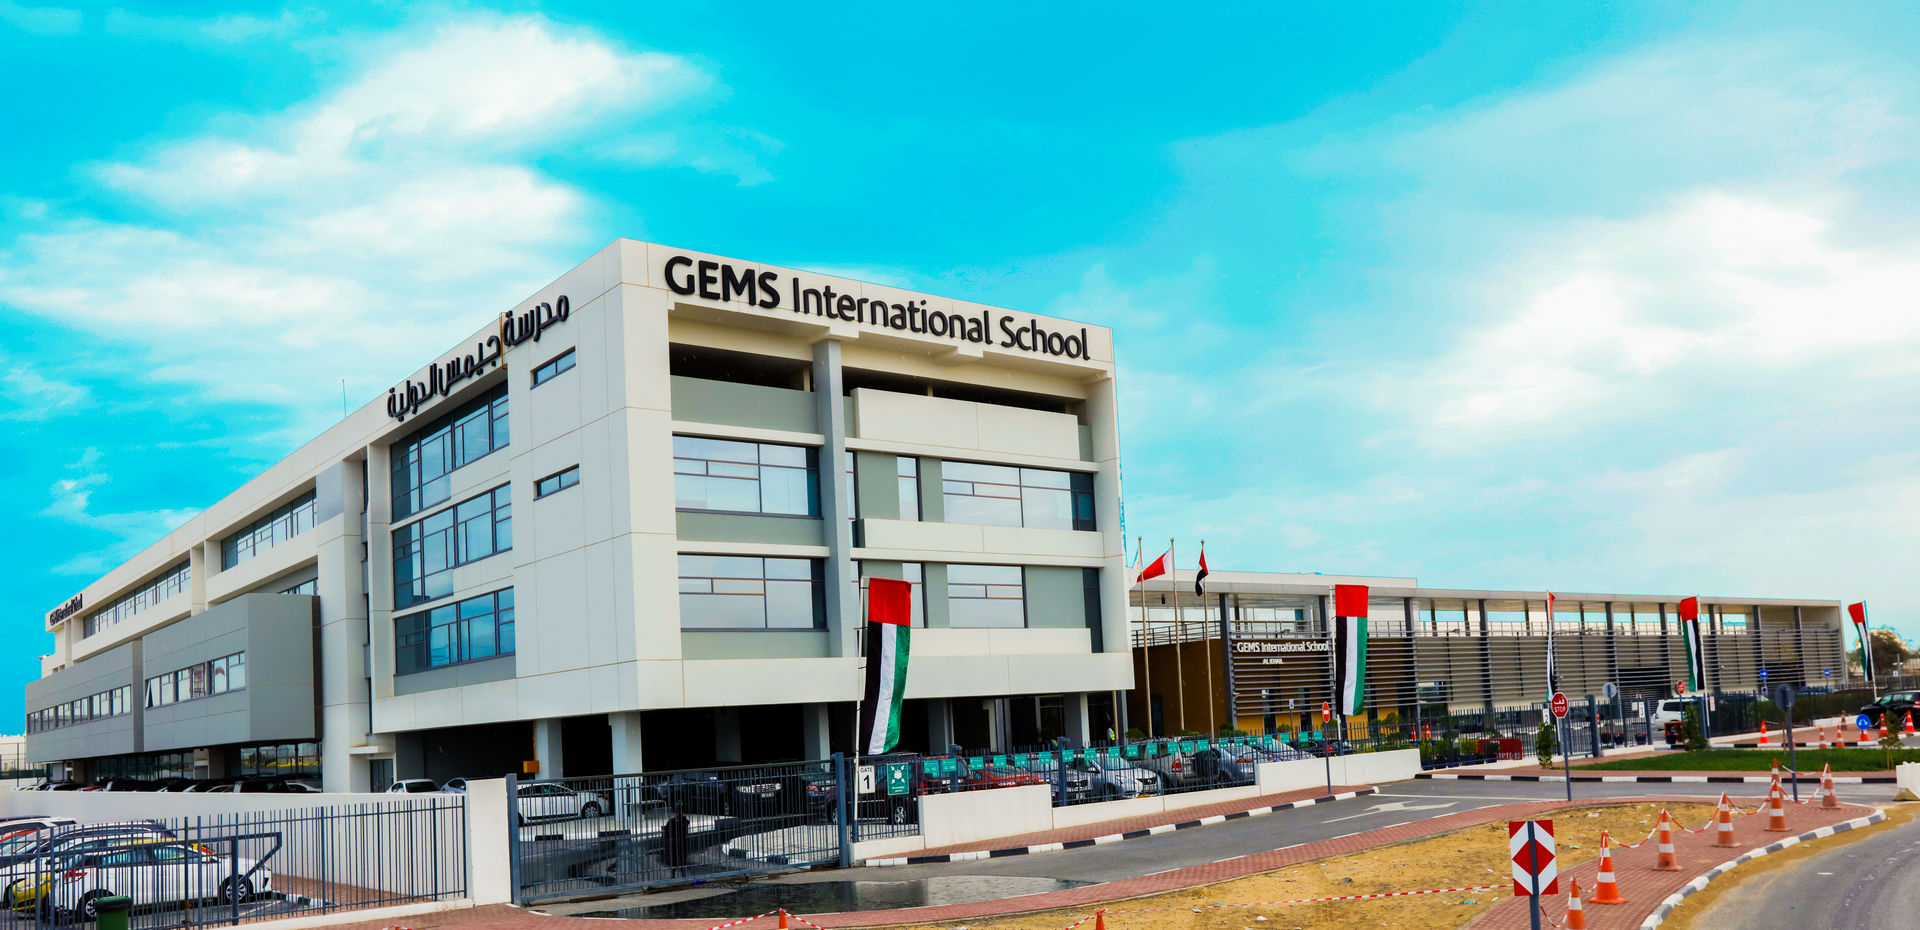 Top Ib (International Baccalaureate) School In Dubai  Gems with regard to Gems World Academy Academic Calendar